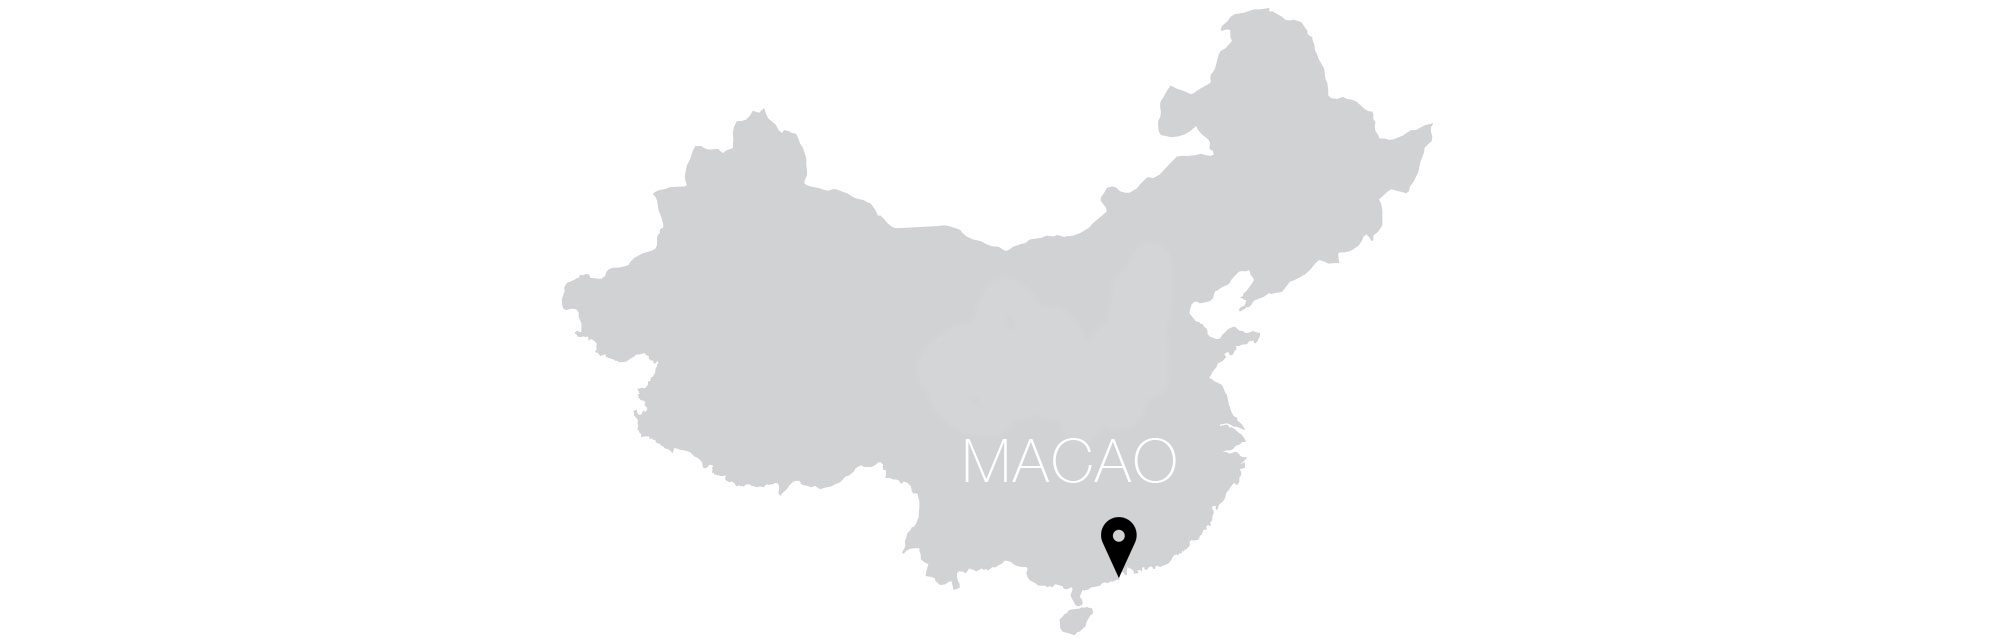 Macao Map Text